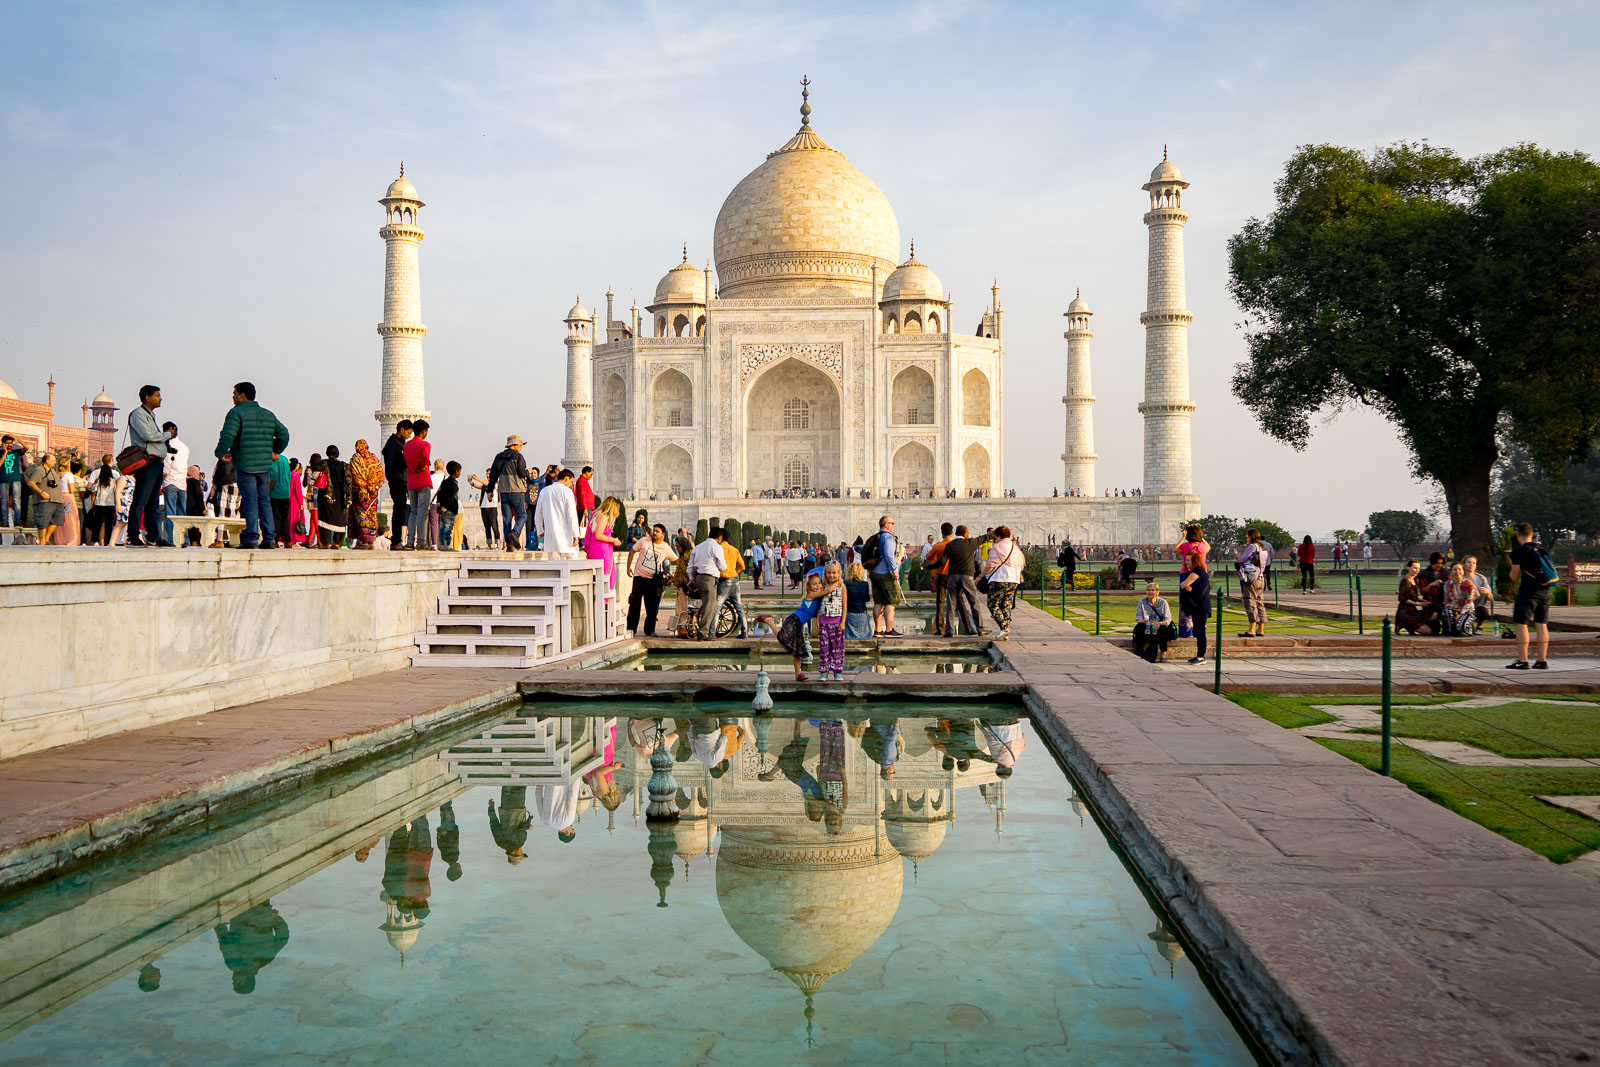 The Best Places To Stay in Agra on a Budget